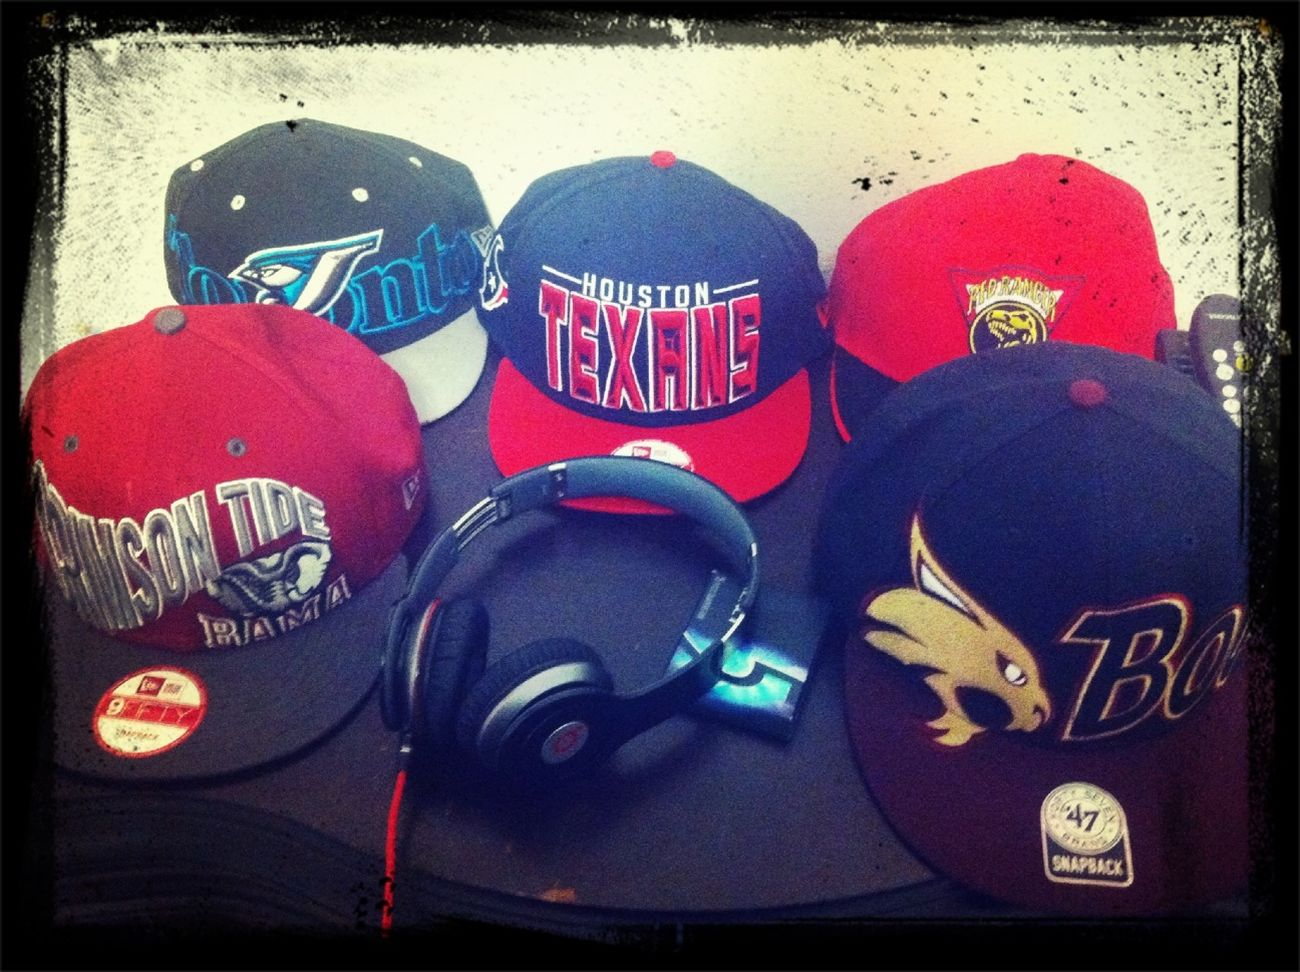 SnapBack game crazy, bluejays, texans, Bama, Texas st. And power rangers